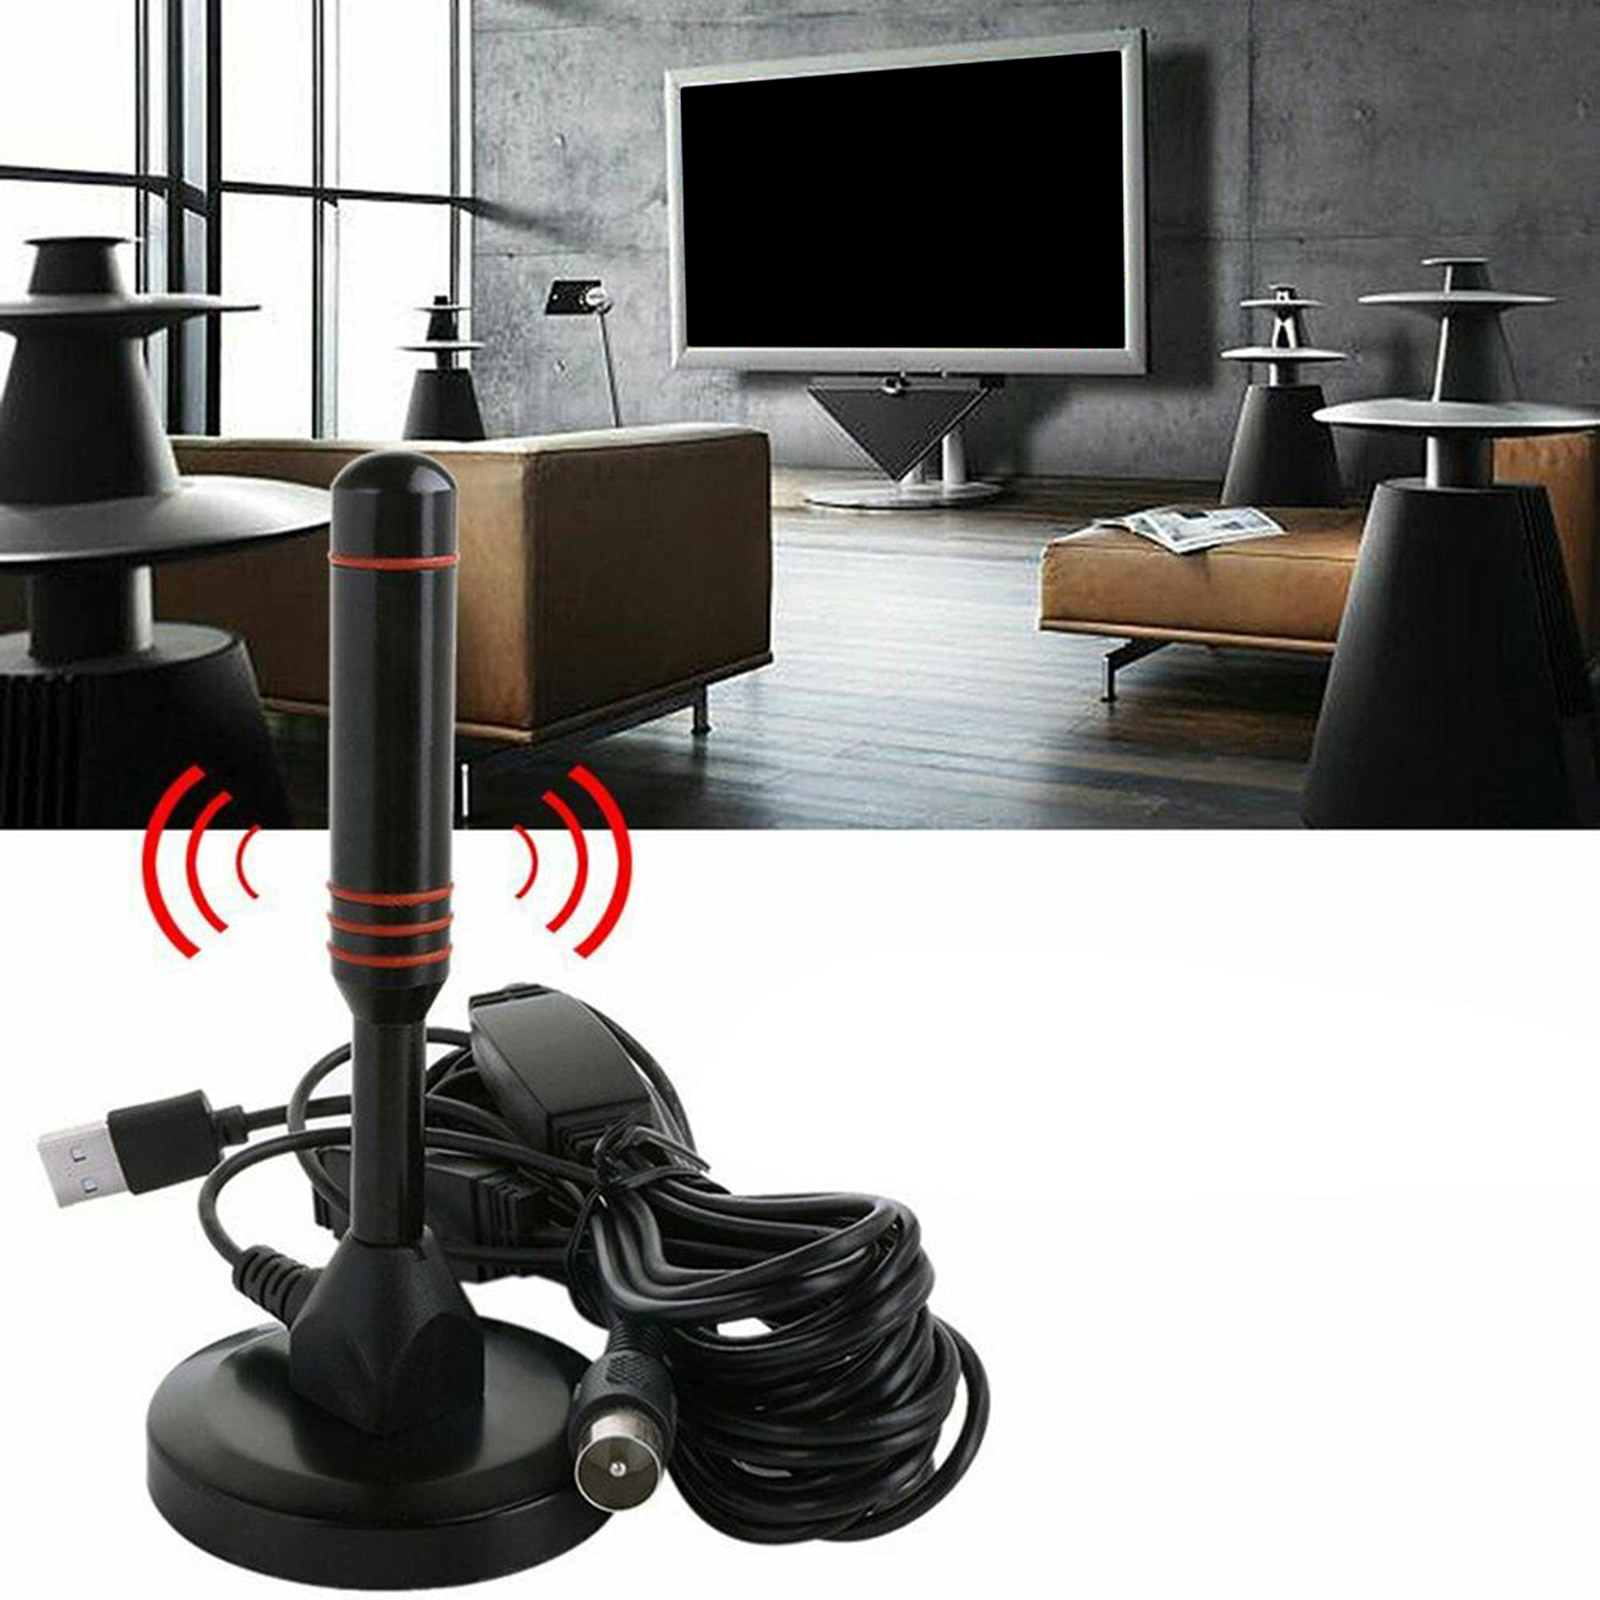 Long 200 Miles Range TV Antenna with Amplifier ATSC/DMB-T/ISDB-T for Tuner VHF/UHF Local Channels